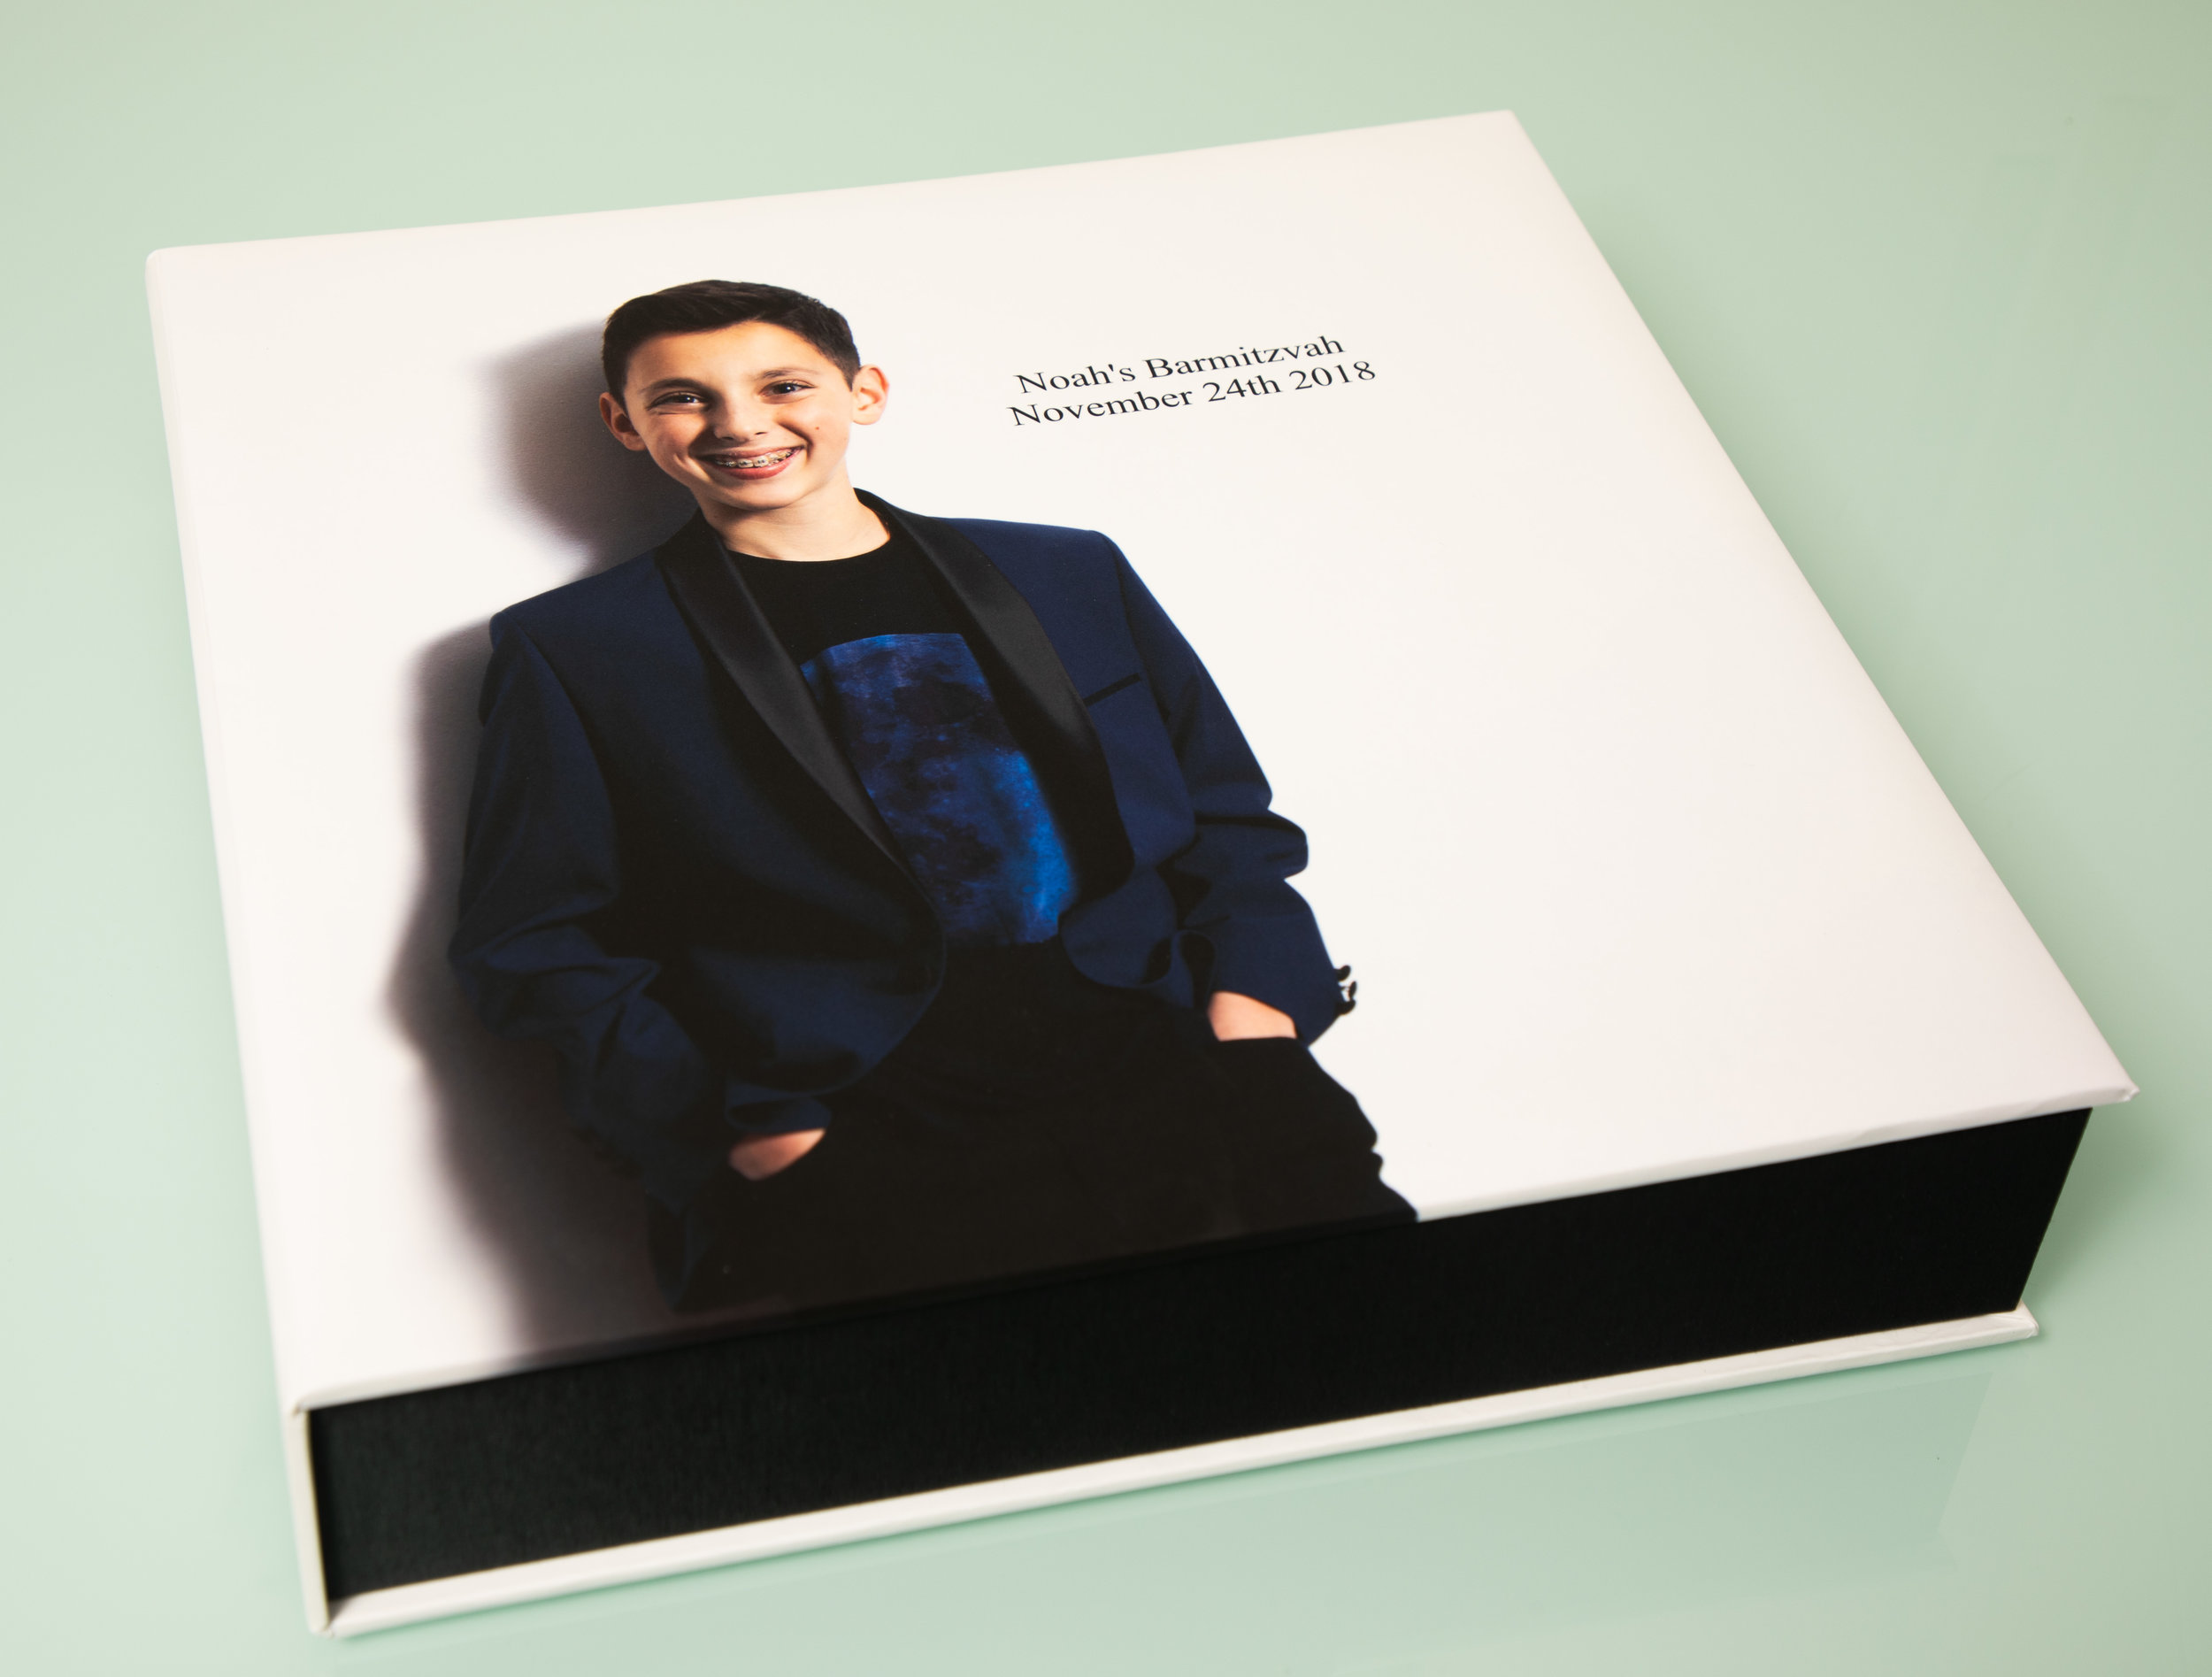 Box with image cover for main album